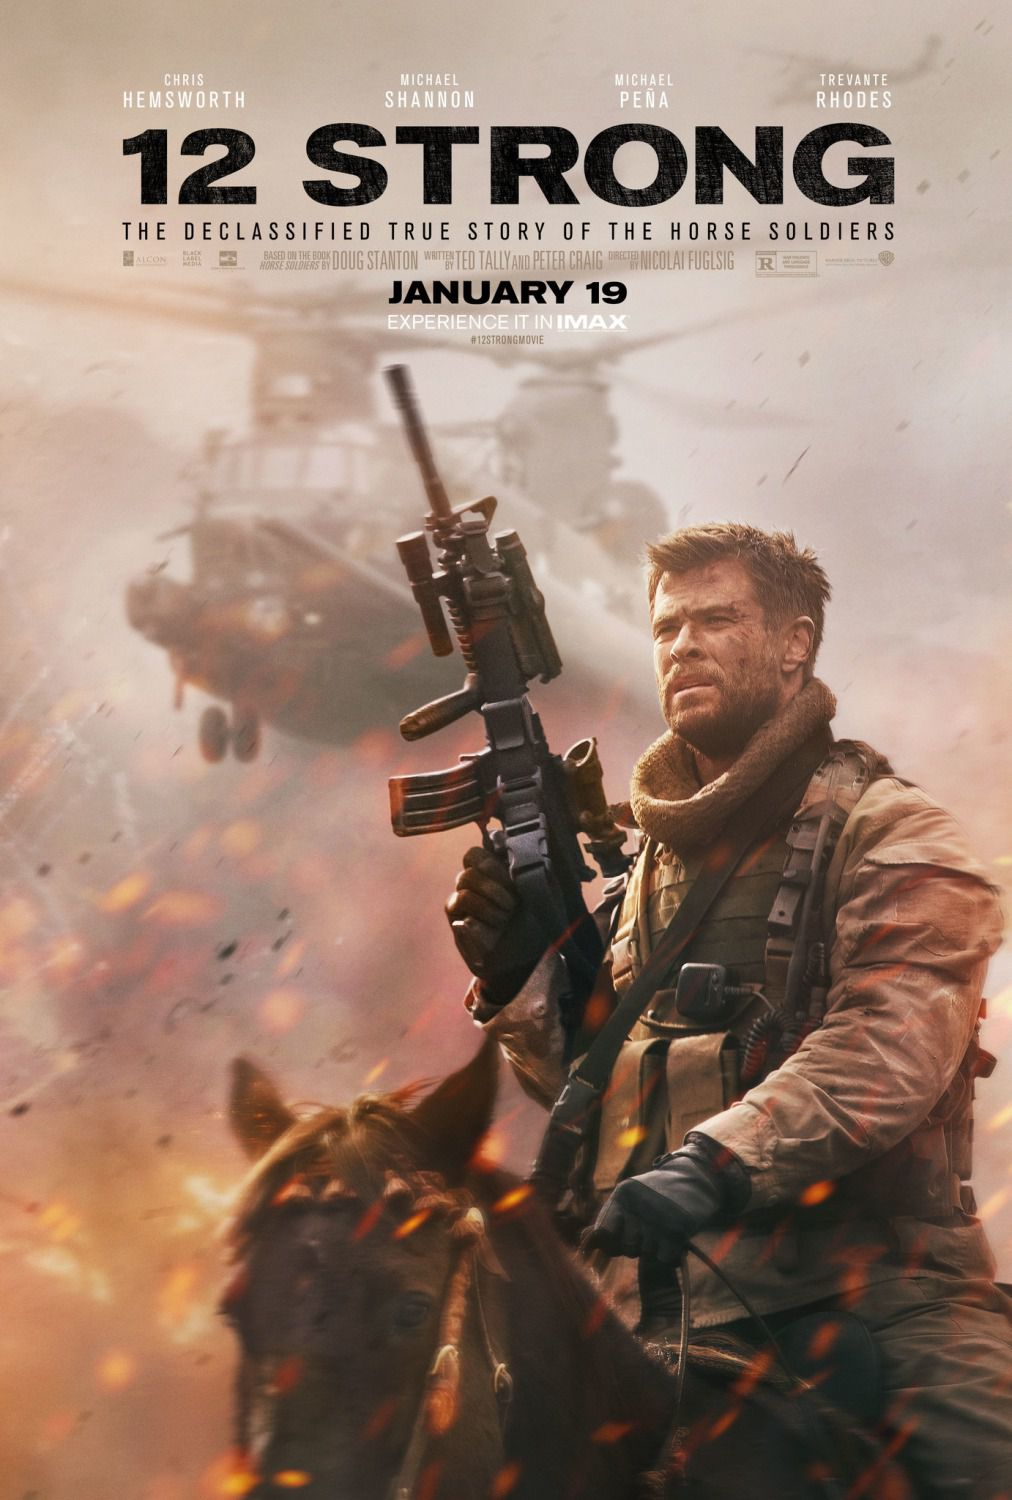 12 Strong the Declassified True Story of the Horse Soldiers  Chris Hemsworth